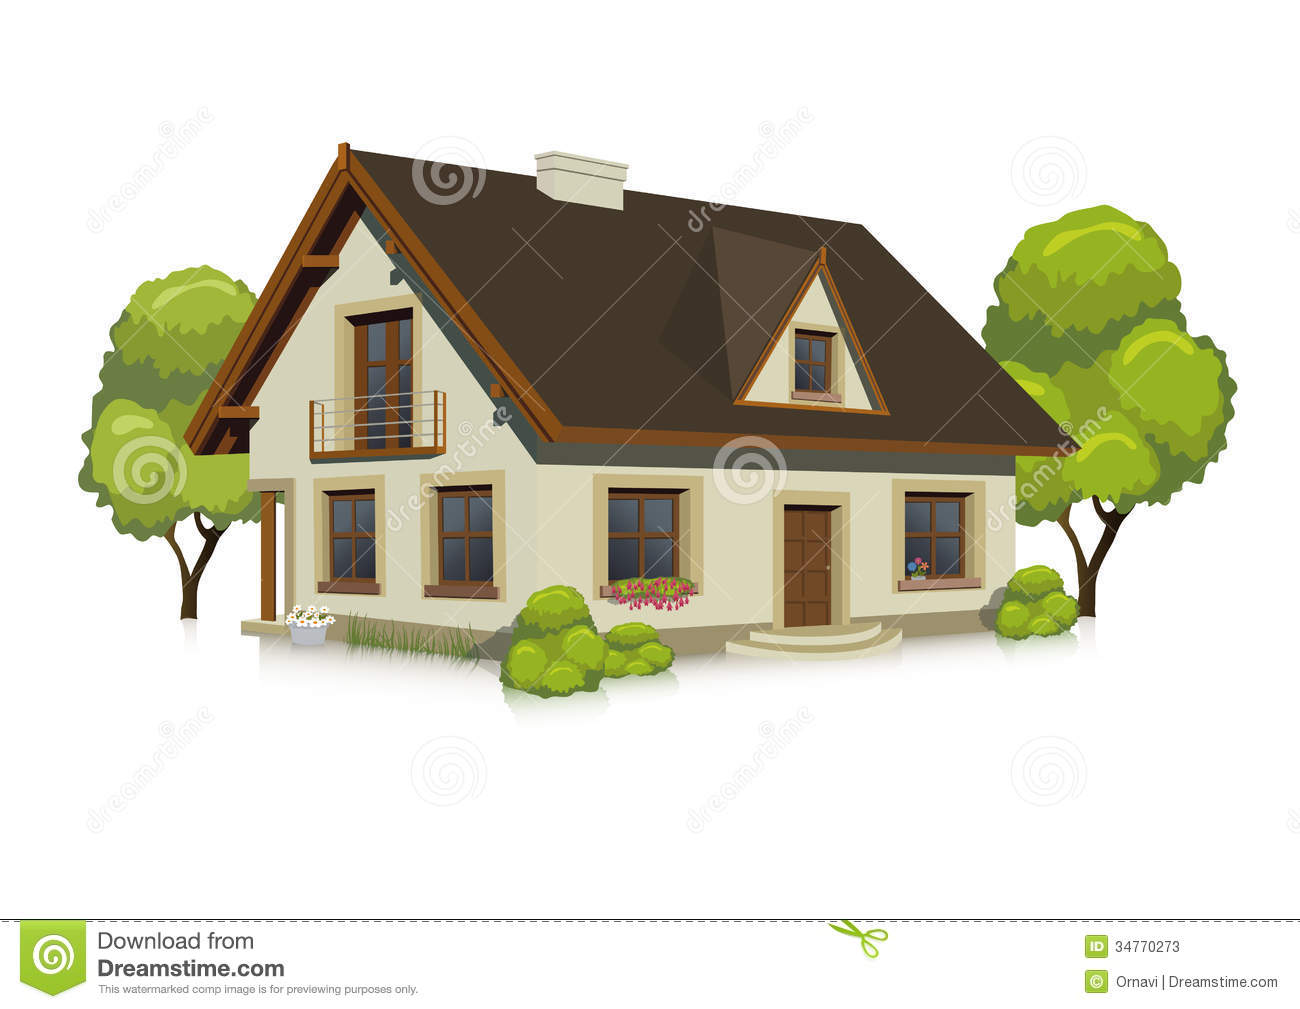 Illustration of visualizing a house stock vector for Free house photos